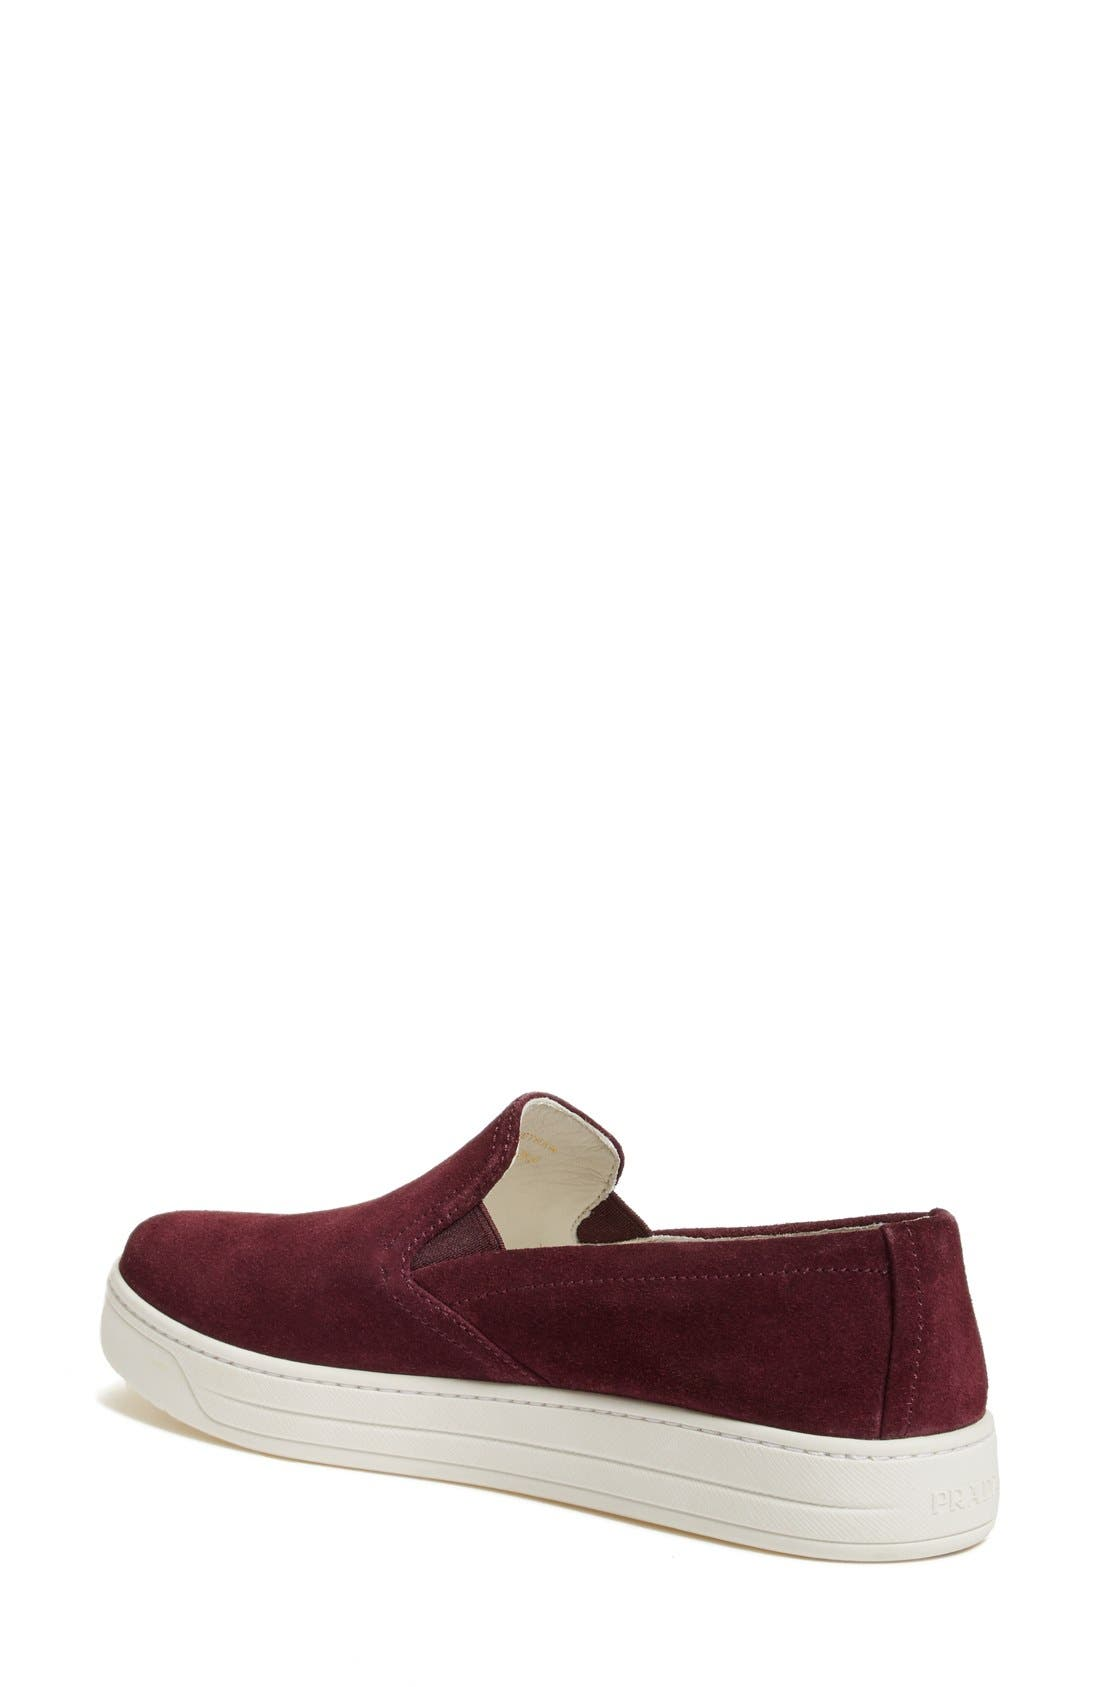 Slip-On Sneaker,                             Alternate thumbnail 41, color,